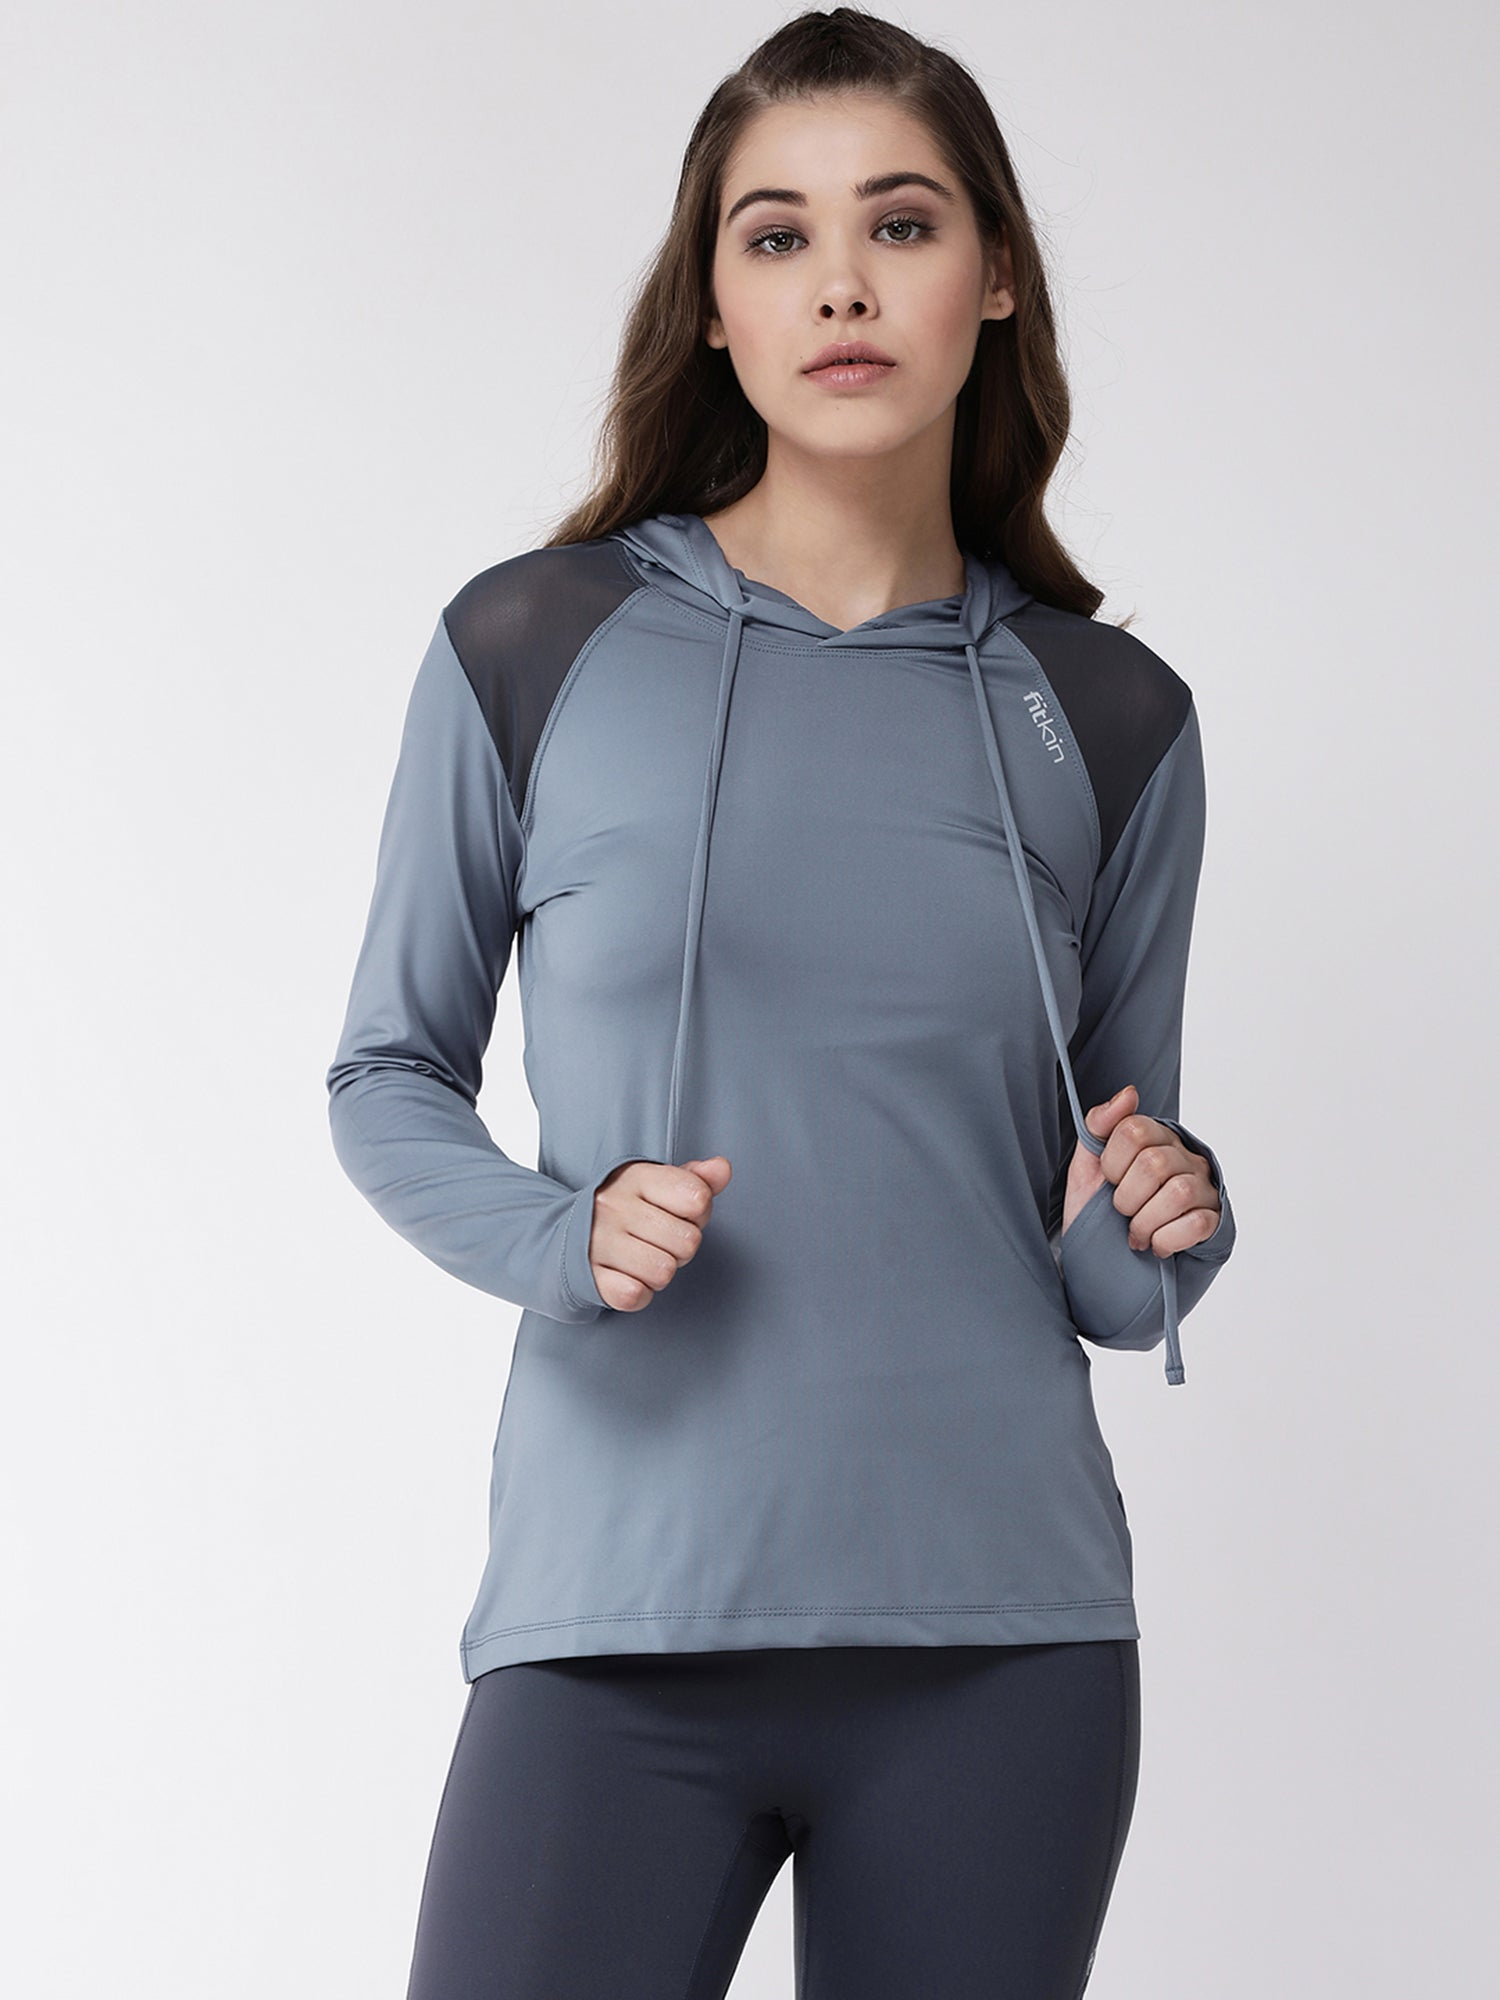 Fitkin women long sleeve shoulder mesh style sports hoodie